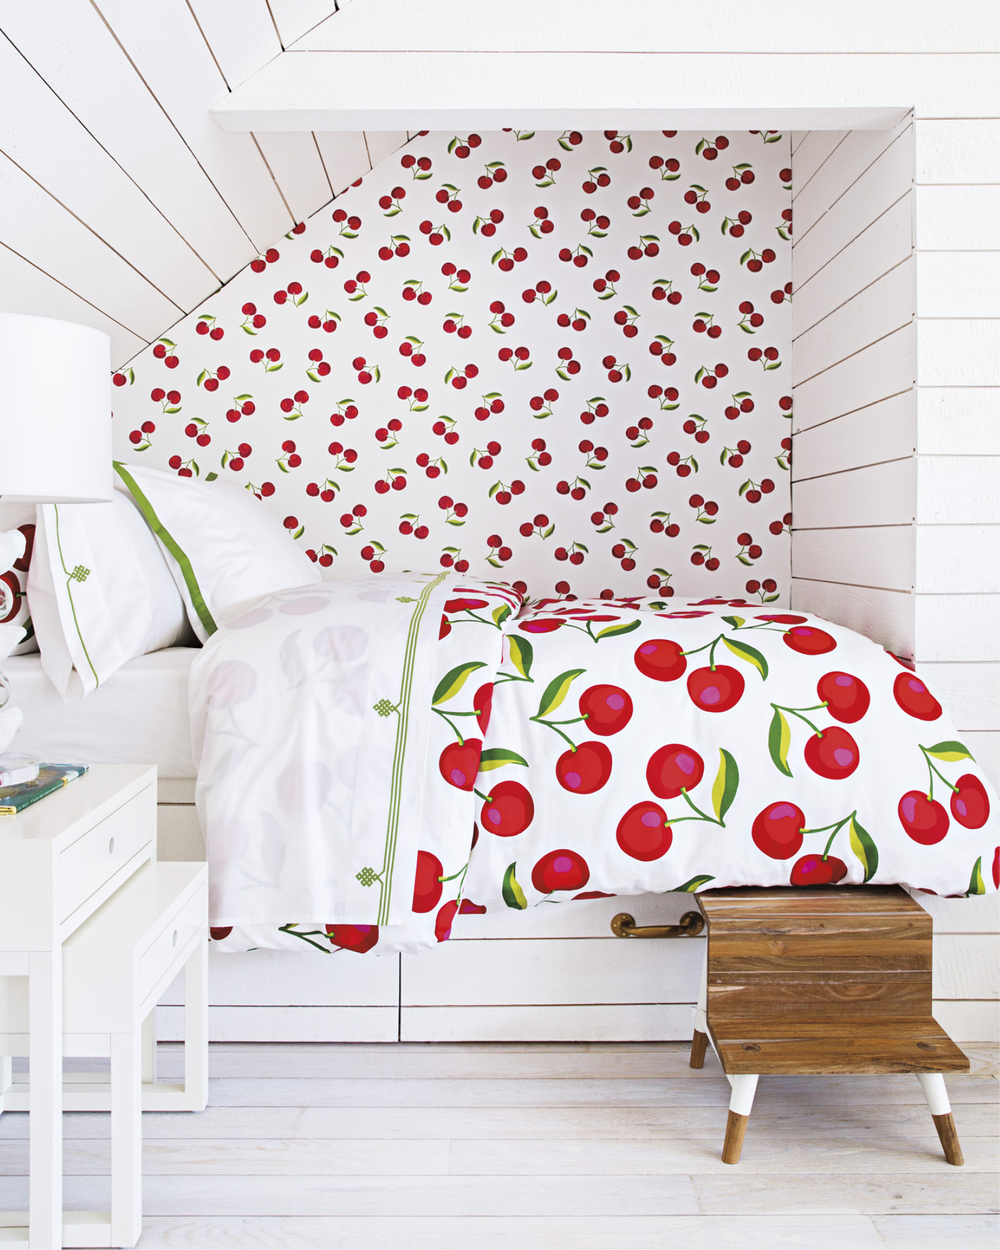 Cherries bedding and wallpaper shown in-situ Serena & Lily store, Westport, CT